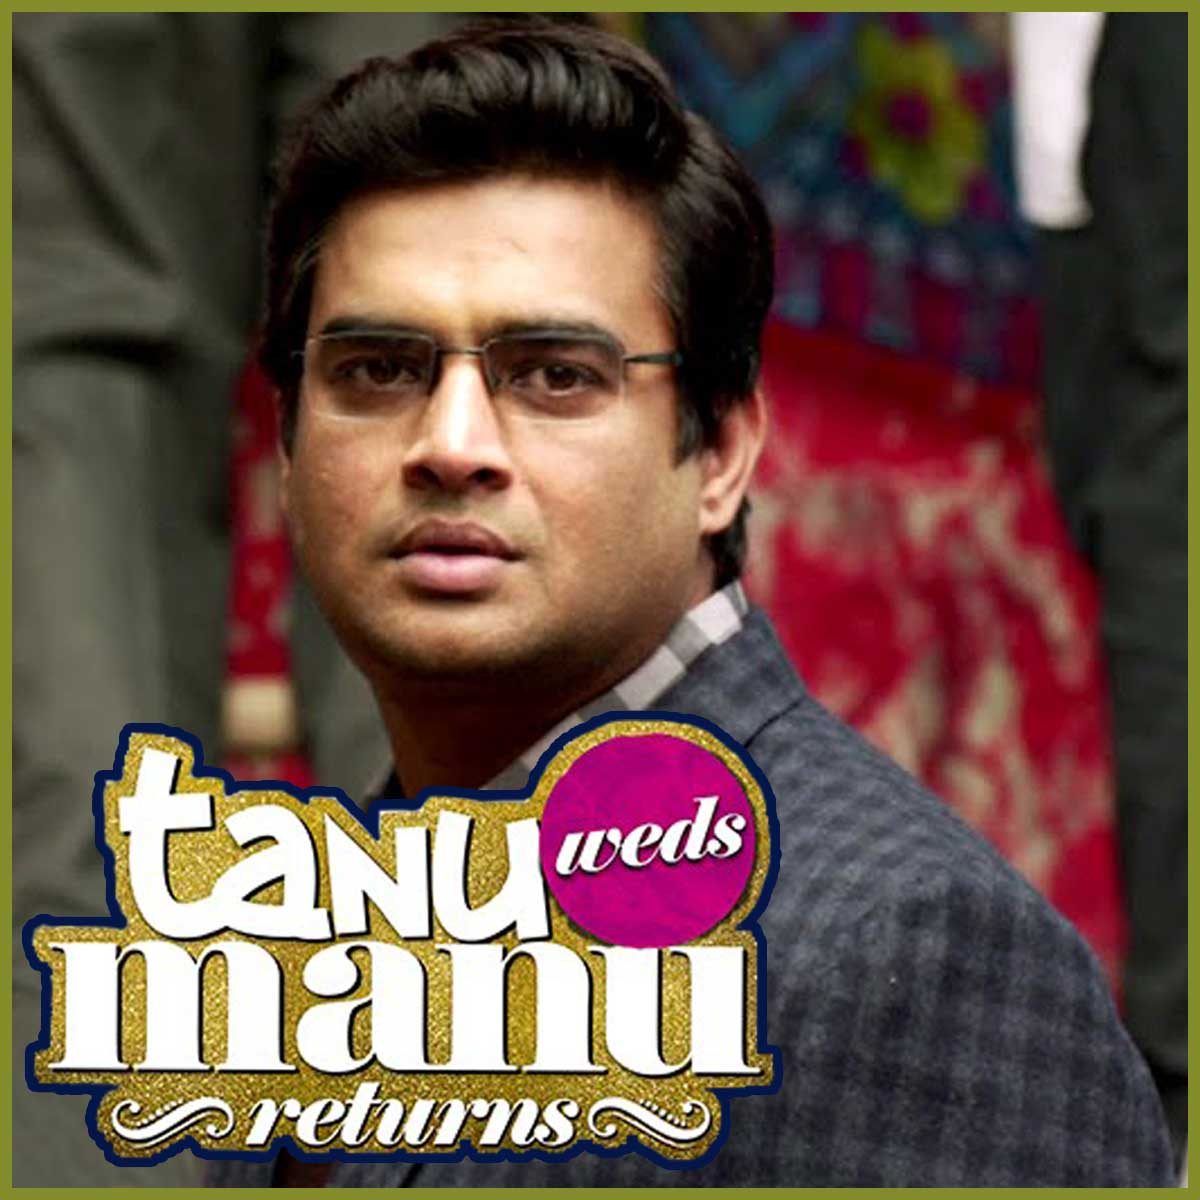 Tanu Weds Mannu 2 Songs Mp3 Download